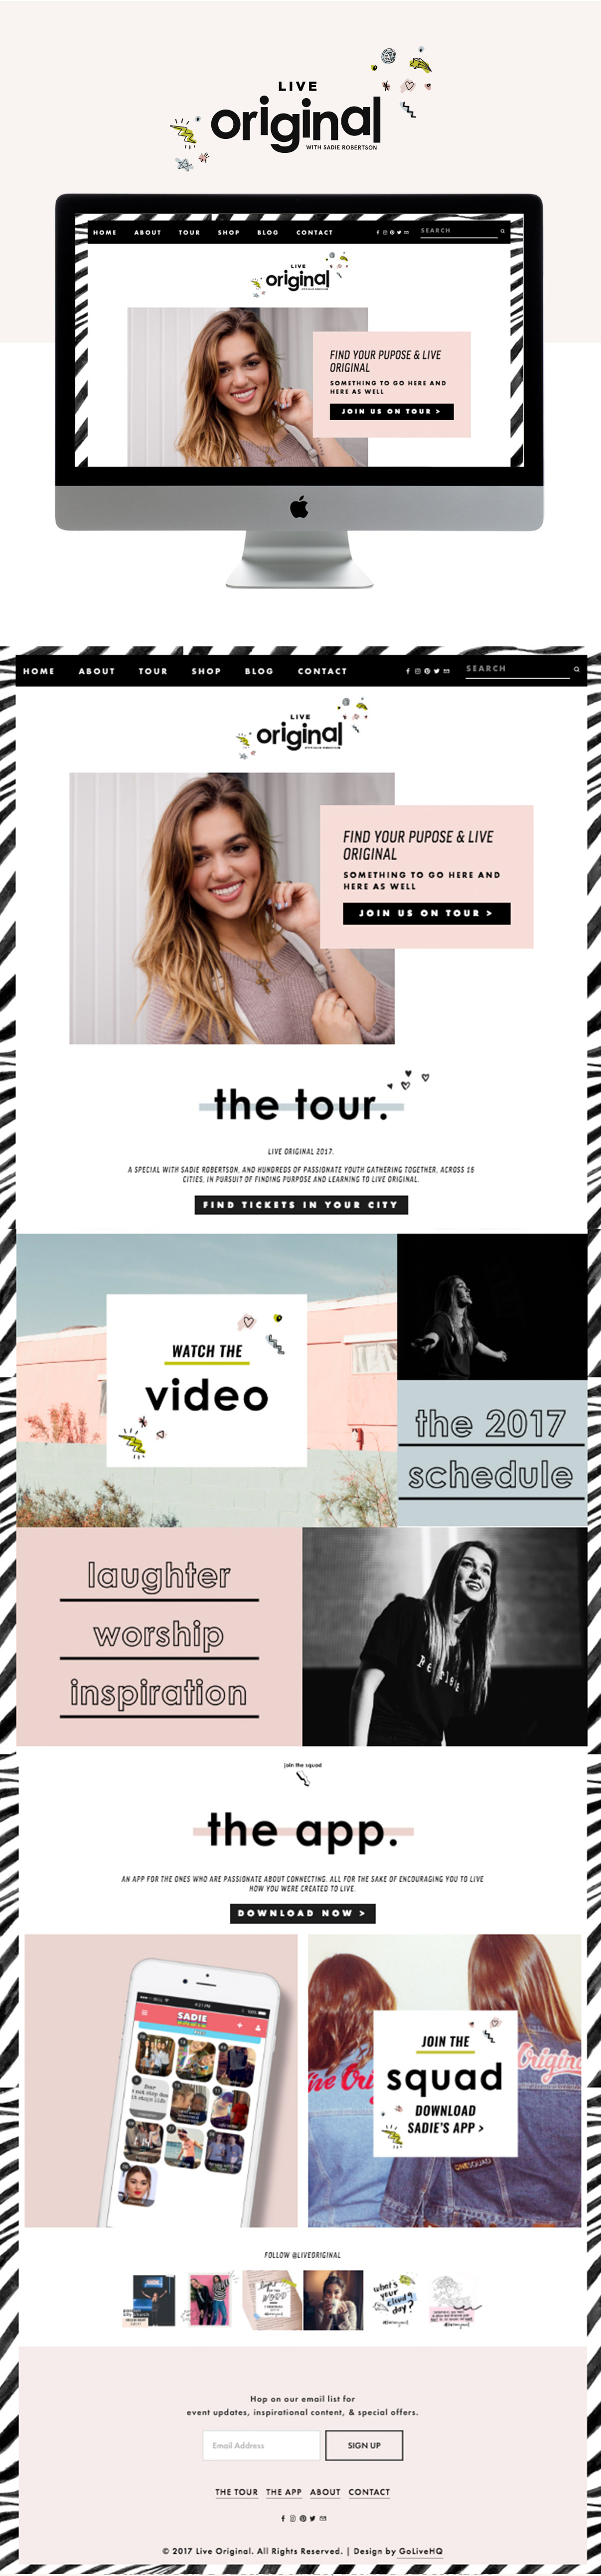 carefree, relaxed and original squarespace website design | designed by: golivehq.co